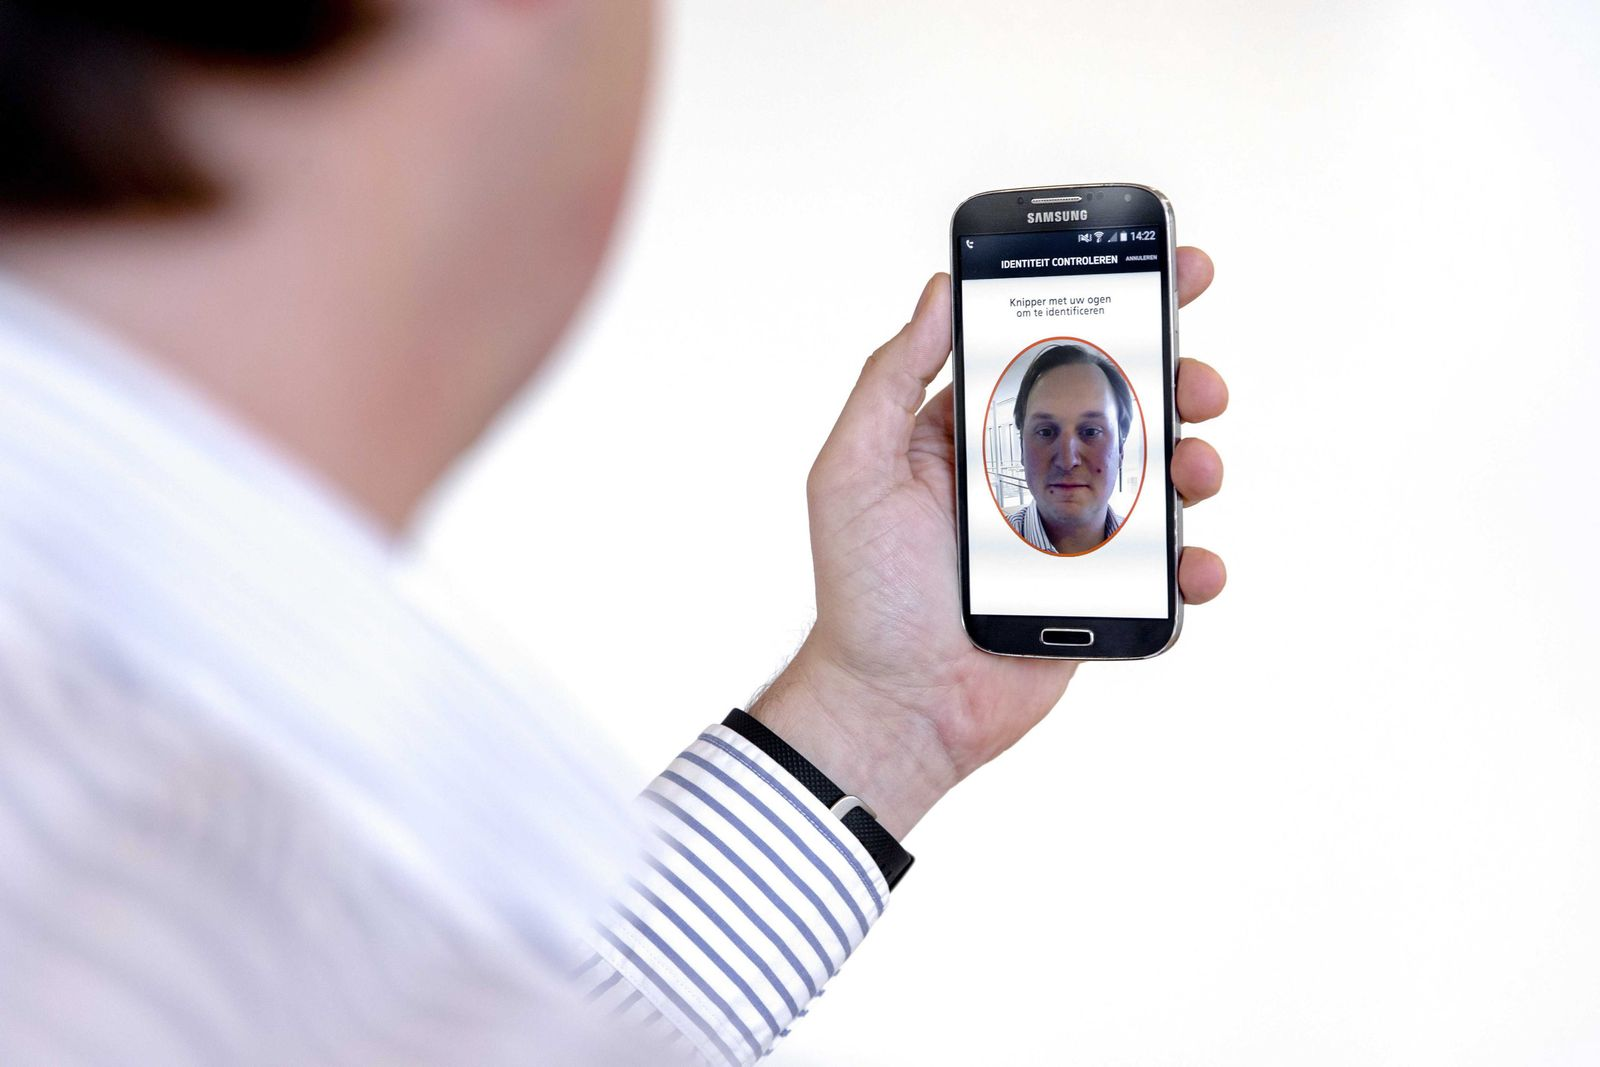 App that allows for online payments using biometric authenticatio